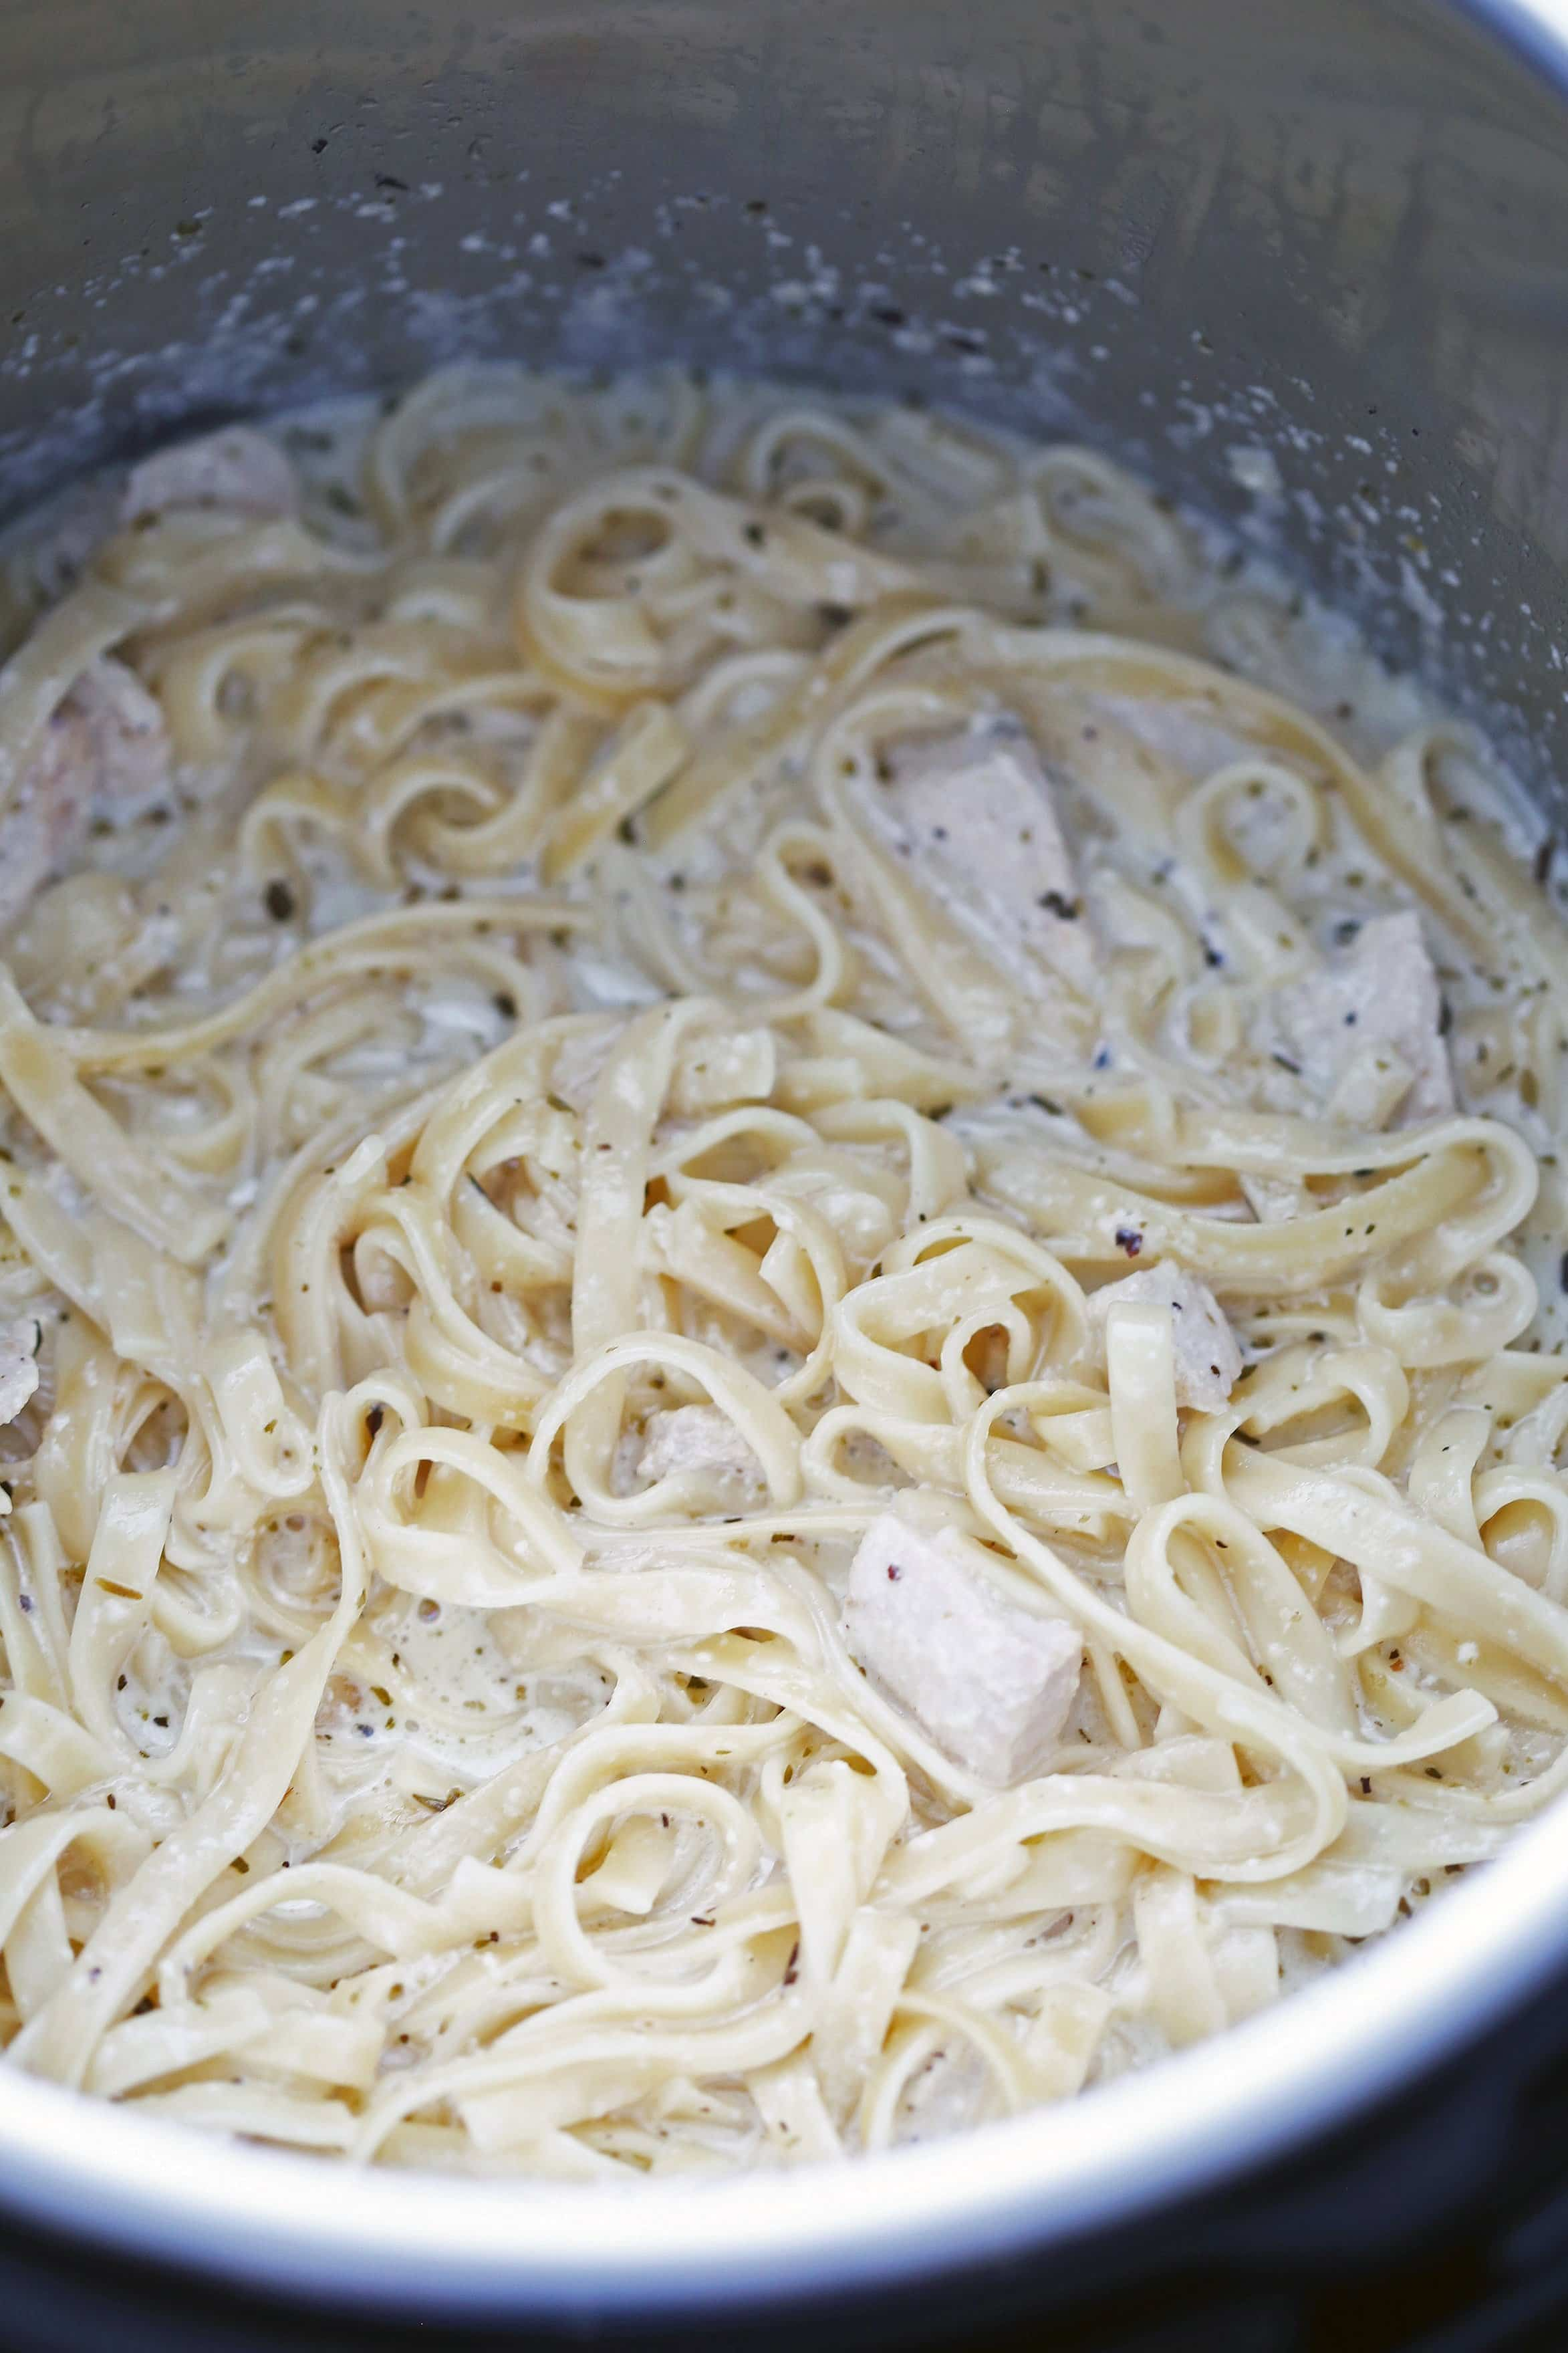 Cooked fettuccine pasta tossed in a cream sauce and diced chicken in the Instant Pot.